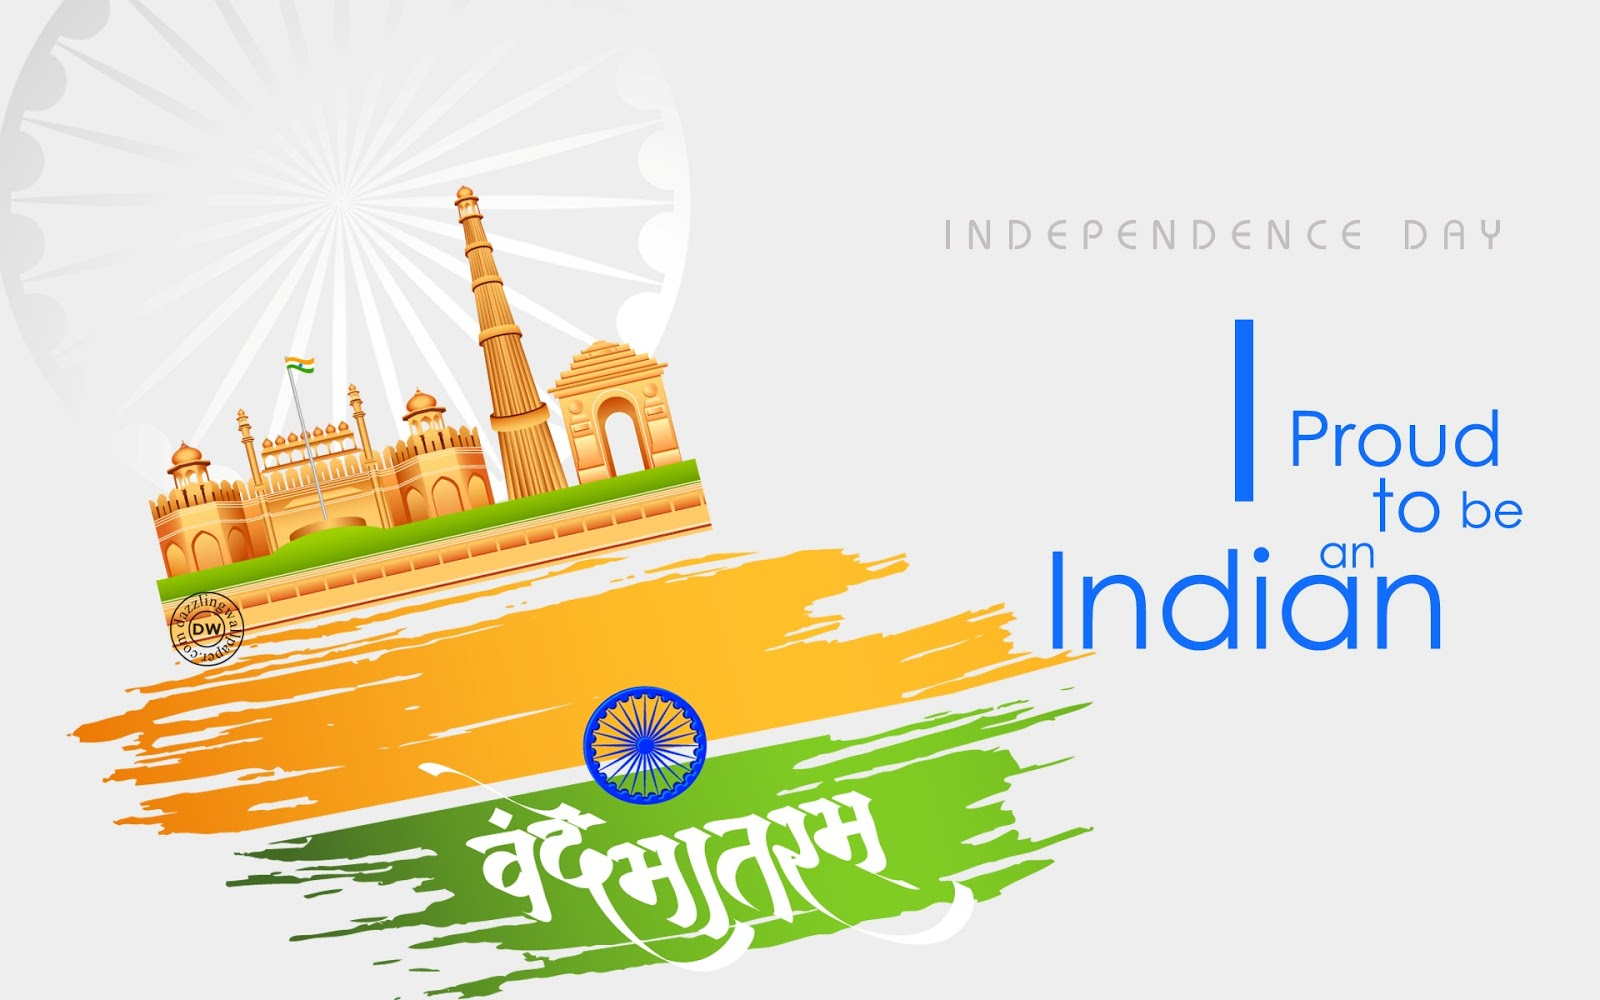 70th Independence Day Celebration of India - 15th Aug 2016 | My India